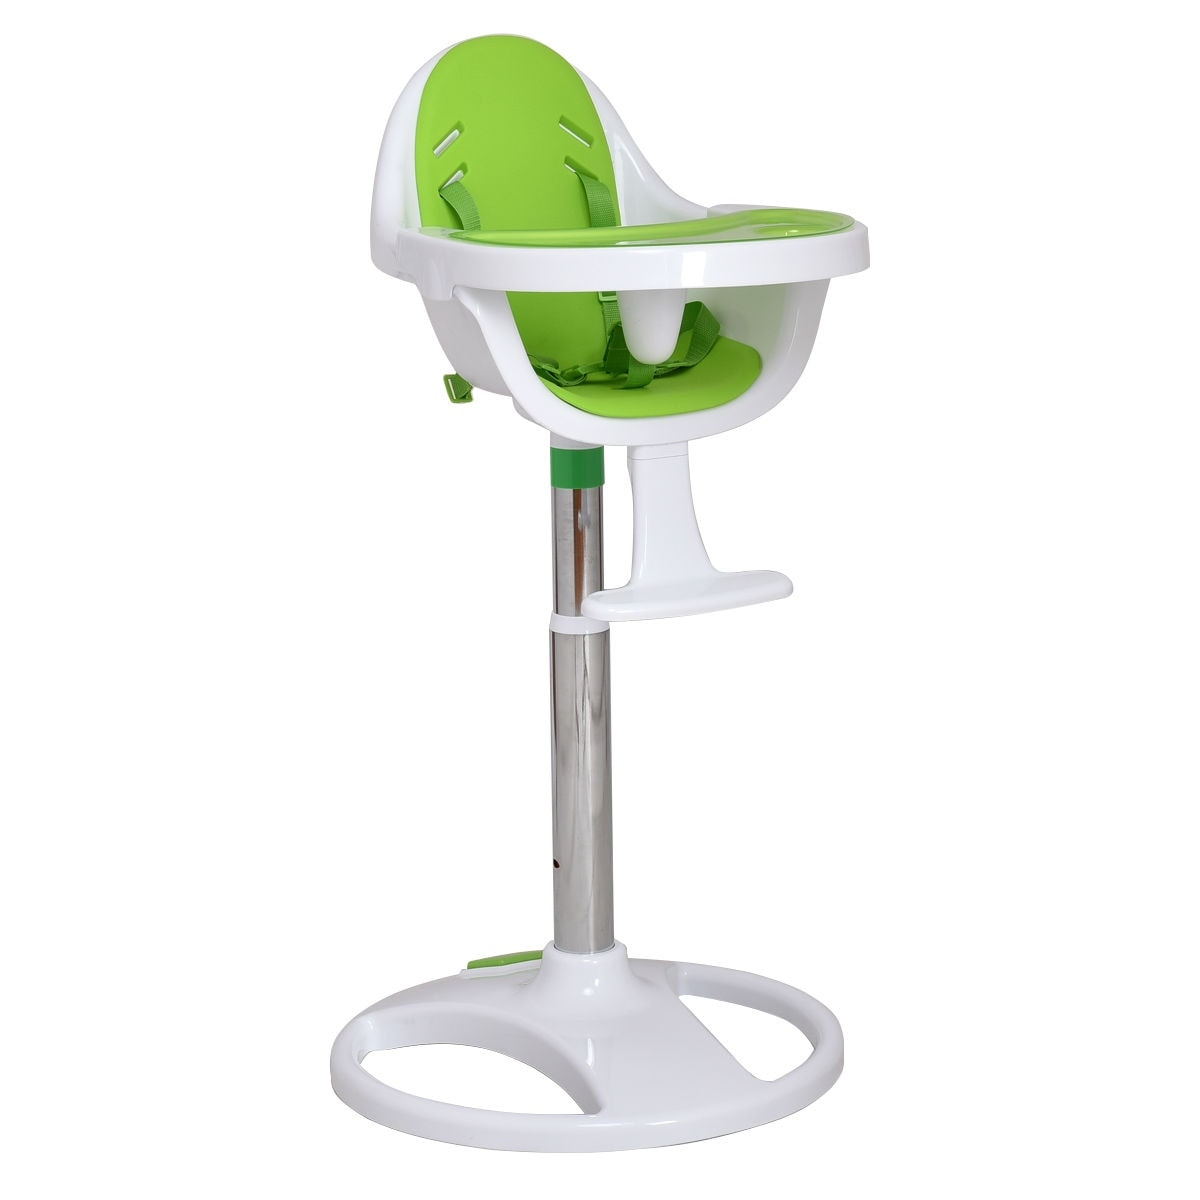 baby dining chair. Costway Green Pedestal Baby High Chair Infant Durable Feeding Dining Table Safety Seat - Free Shipping Today Overstock 22897482 I